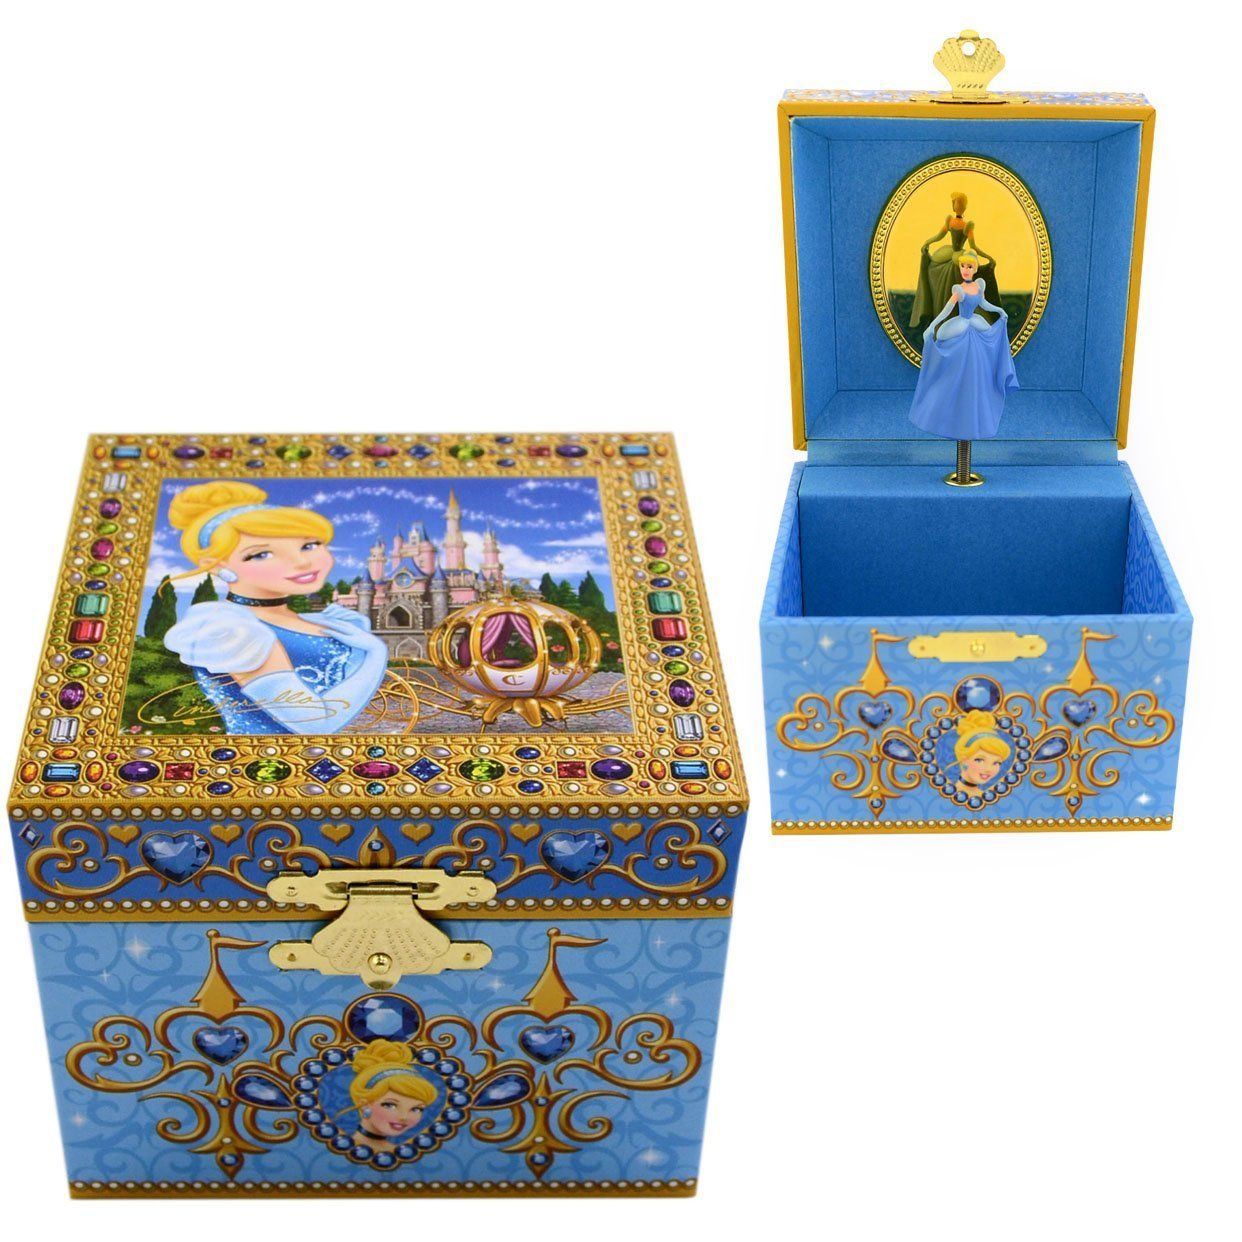 Amazoncom Disney Parks Exclusive Cinderella Musical Jewelry Box